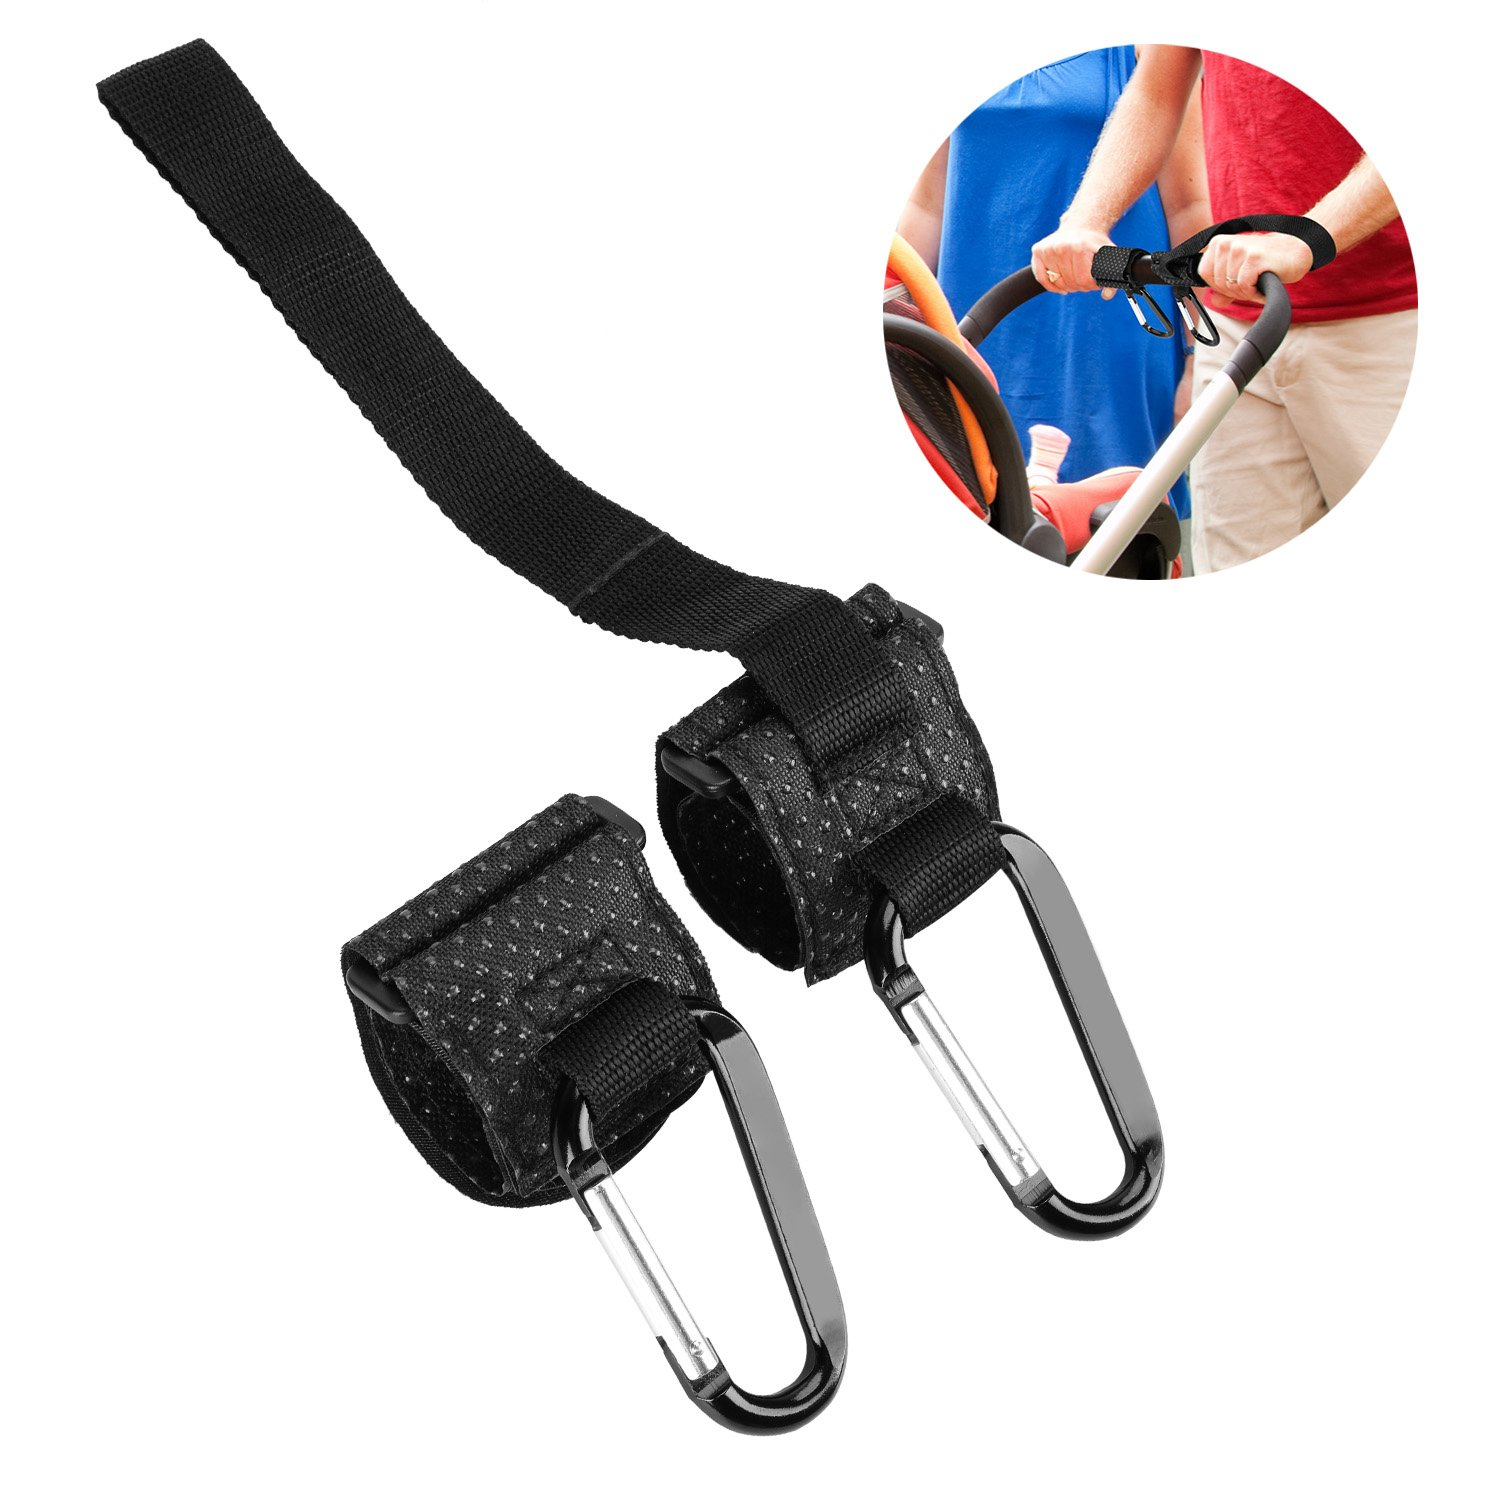 Phogary Stroller Hooks with Baby Safety Belt 2 Pack Universal Fit Pushchair/Buggy/Pram Hooks for Shopping Bags Handbags Diaper Bag, One with Wrist Strap for Baby Safety